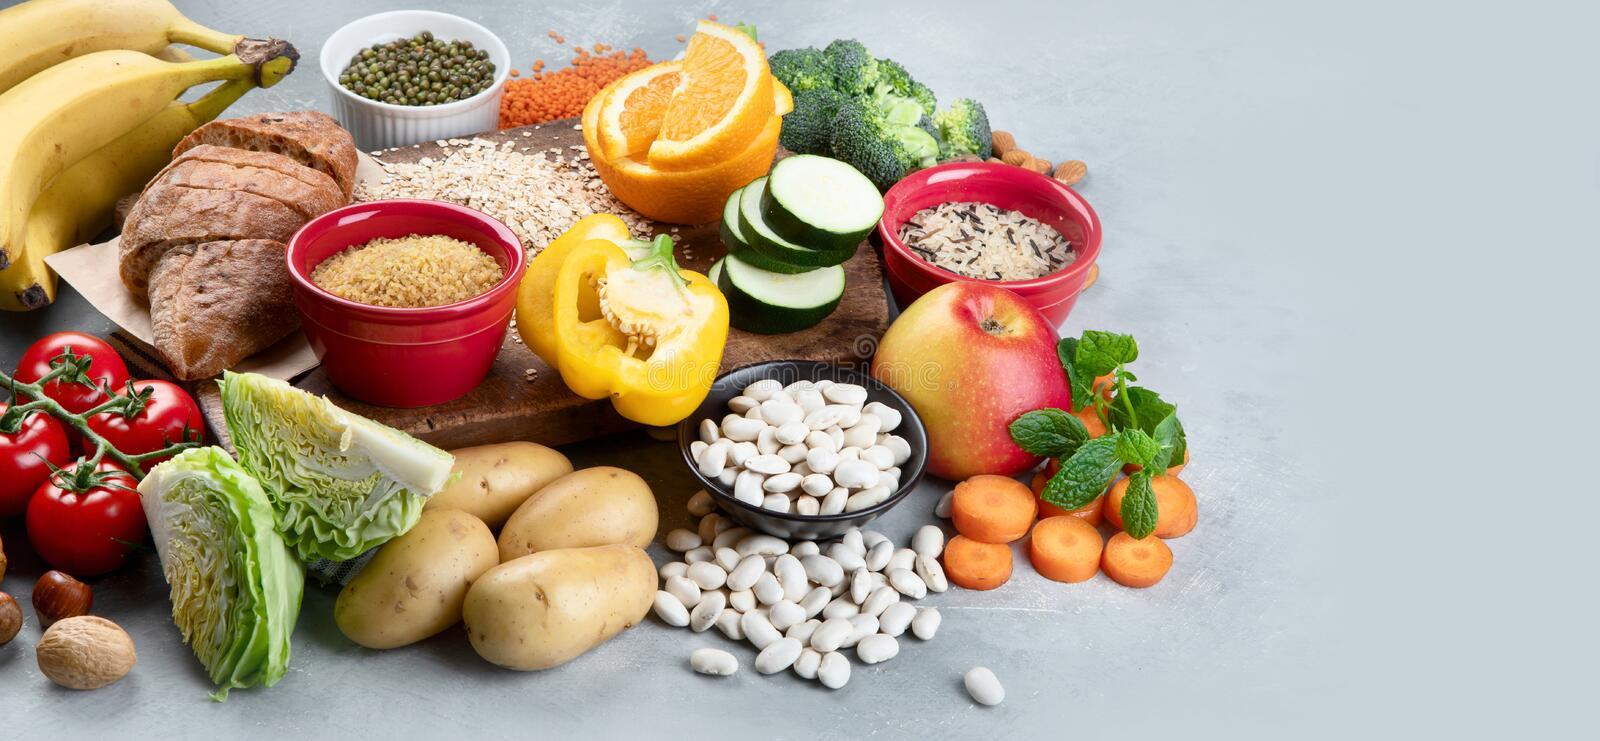 Foods High In Carbohydrates On Grey Background Stock Image - Image of  grain, antioxidant: 181011787